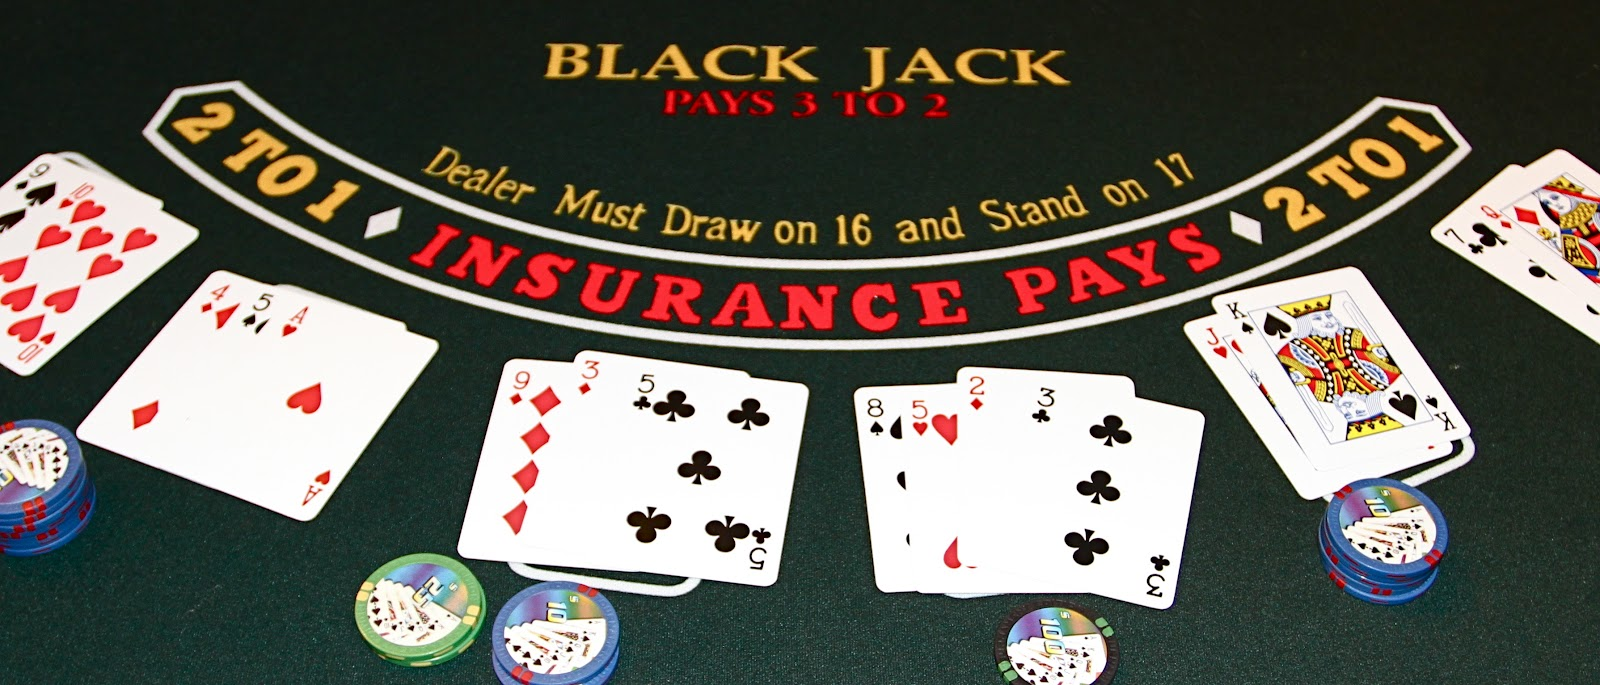 Basic Rules for BlackJack (21)